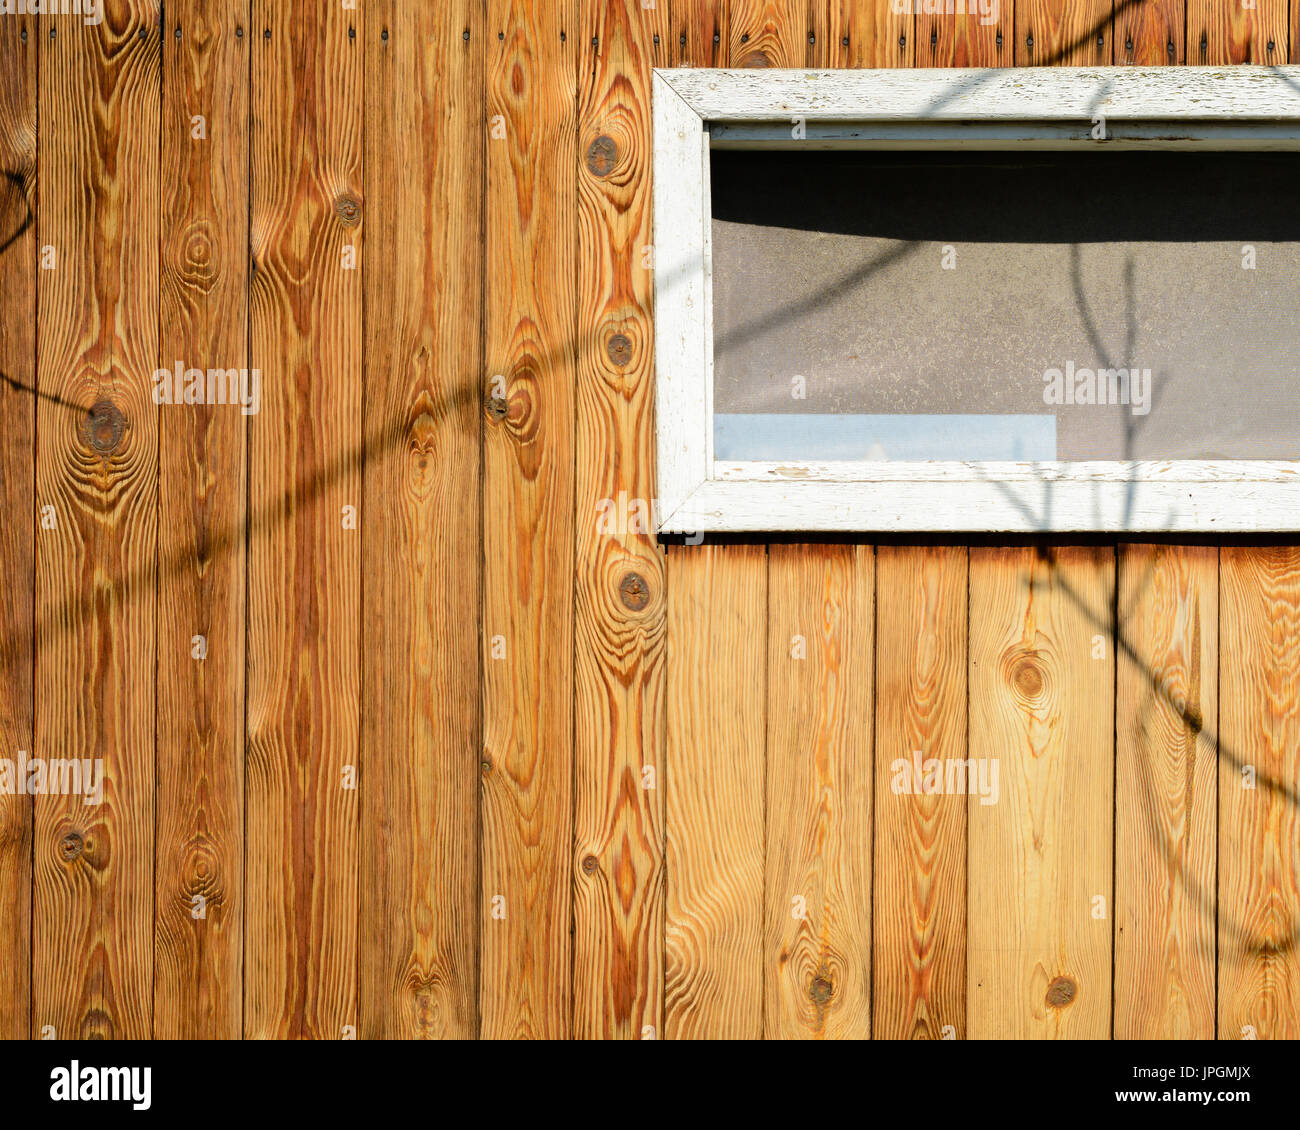 Vertical Wood Slat Wall The Wall Of An Old Wooden House Made Of Thin Vertical Slats Stock